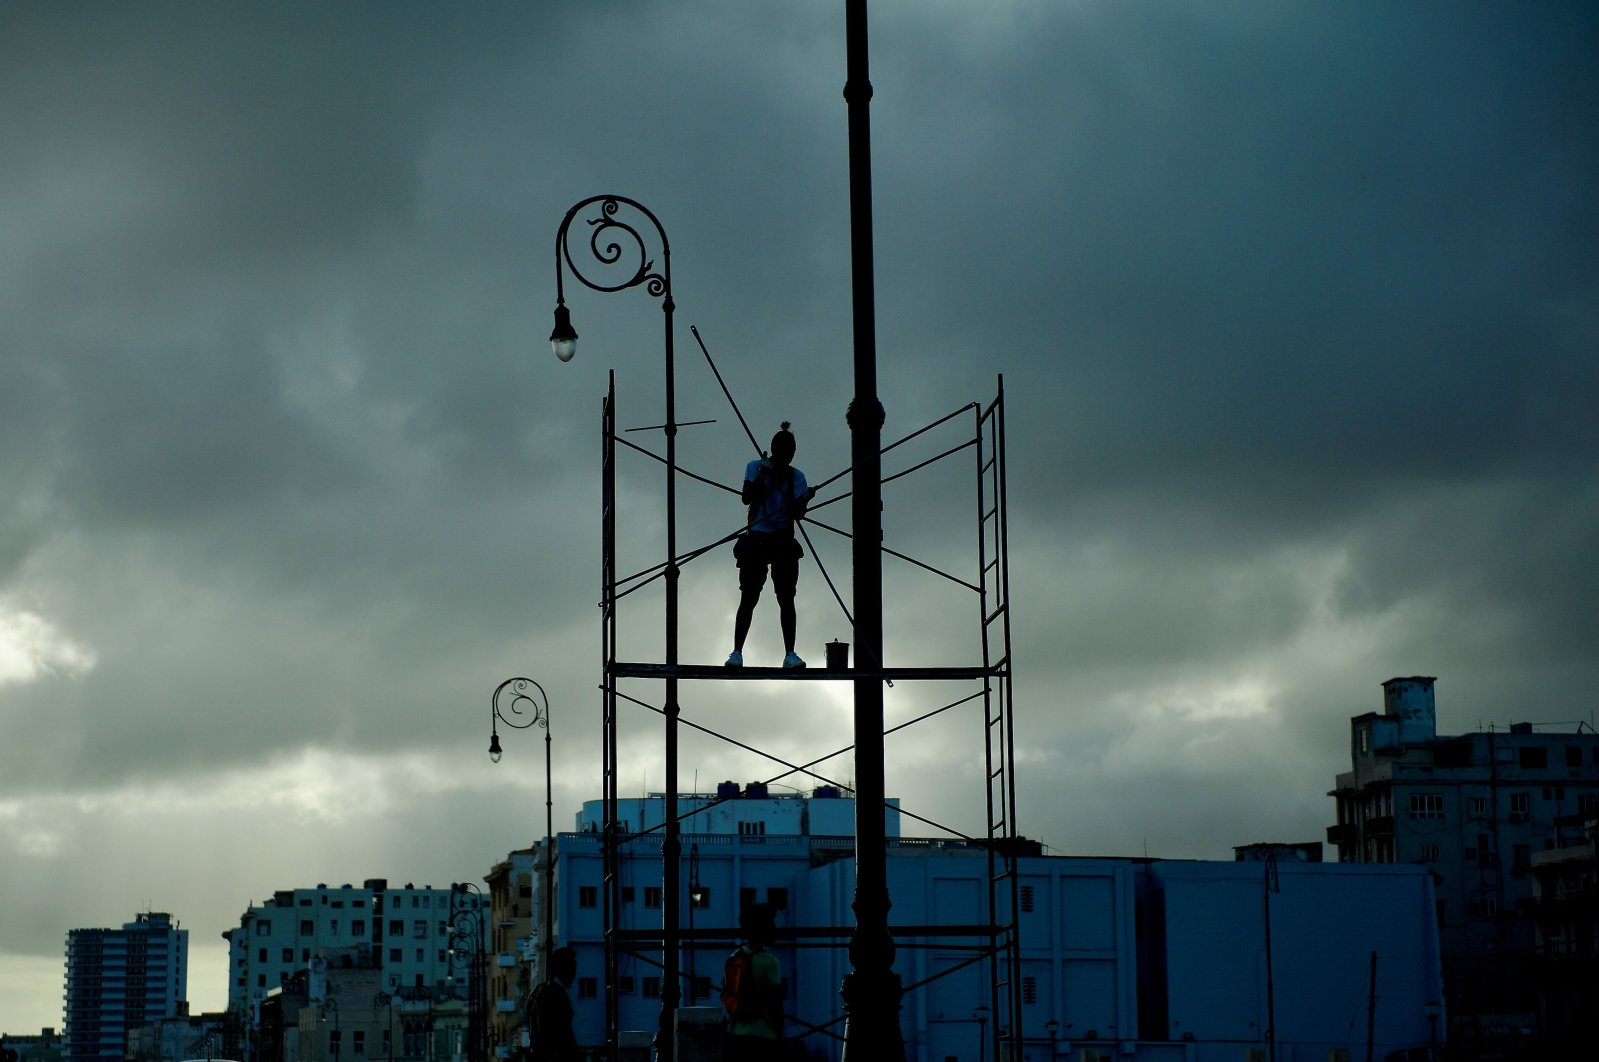 A worker secures a luminary during preparations for the arrival of Tropical Storm Laura in Havana, Cuba, Aug. 24, 2020. (AFP Photo)